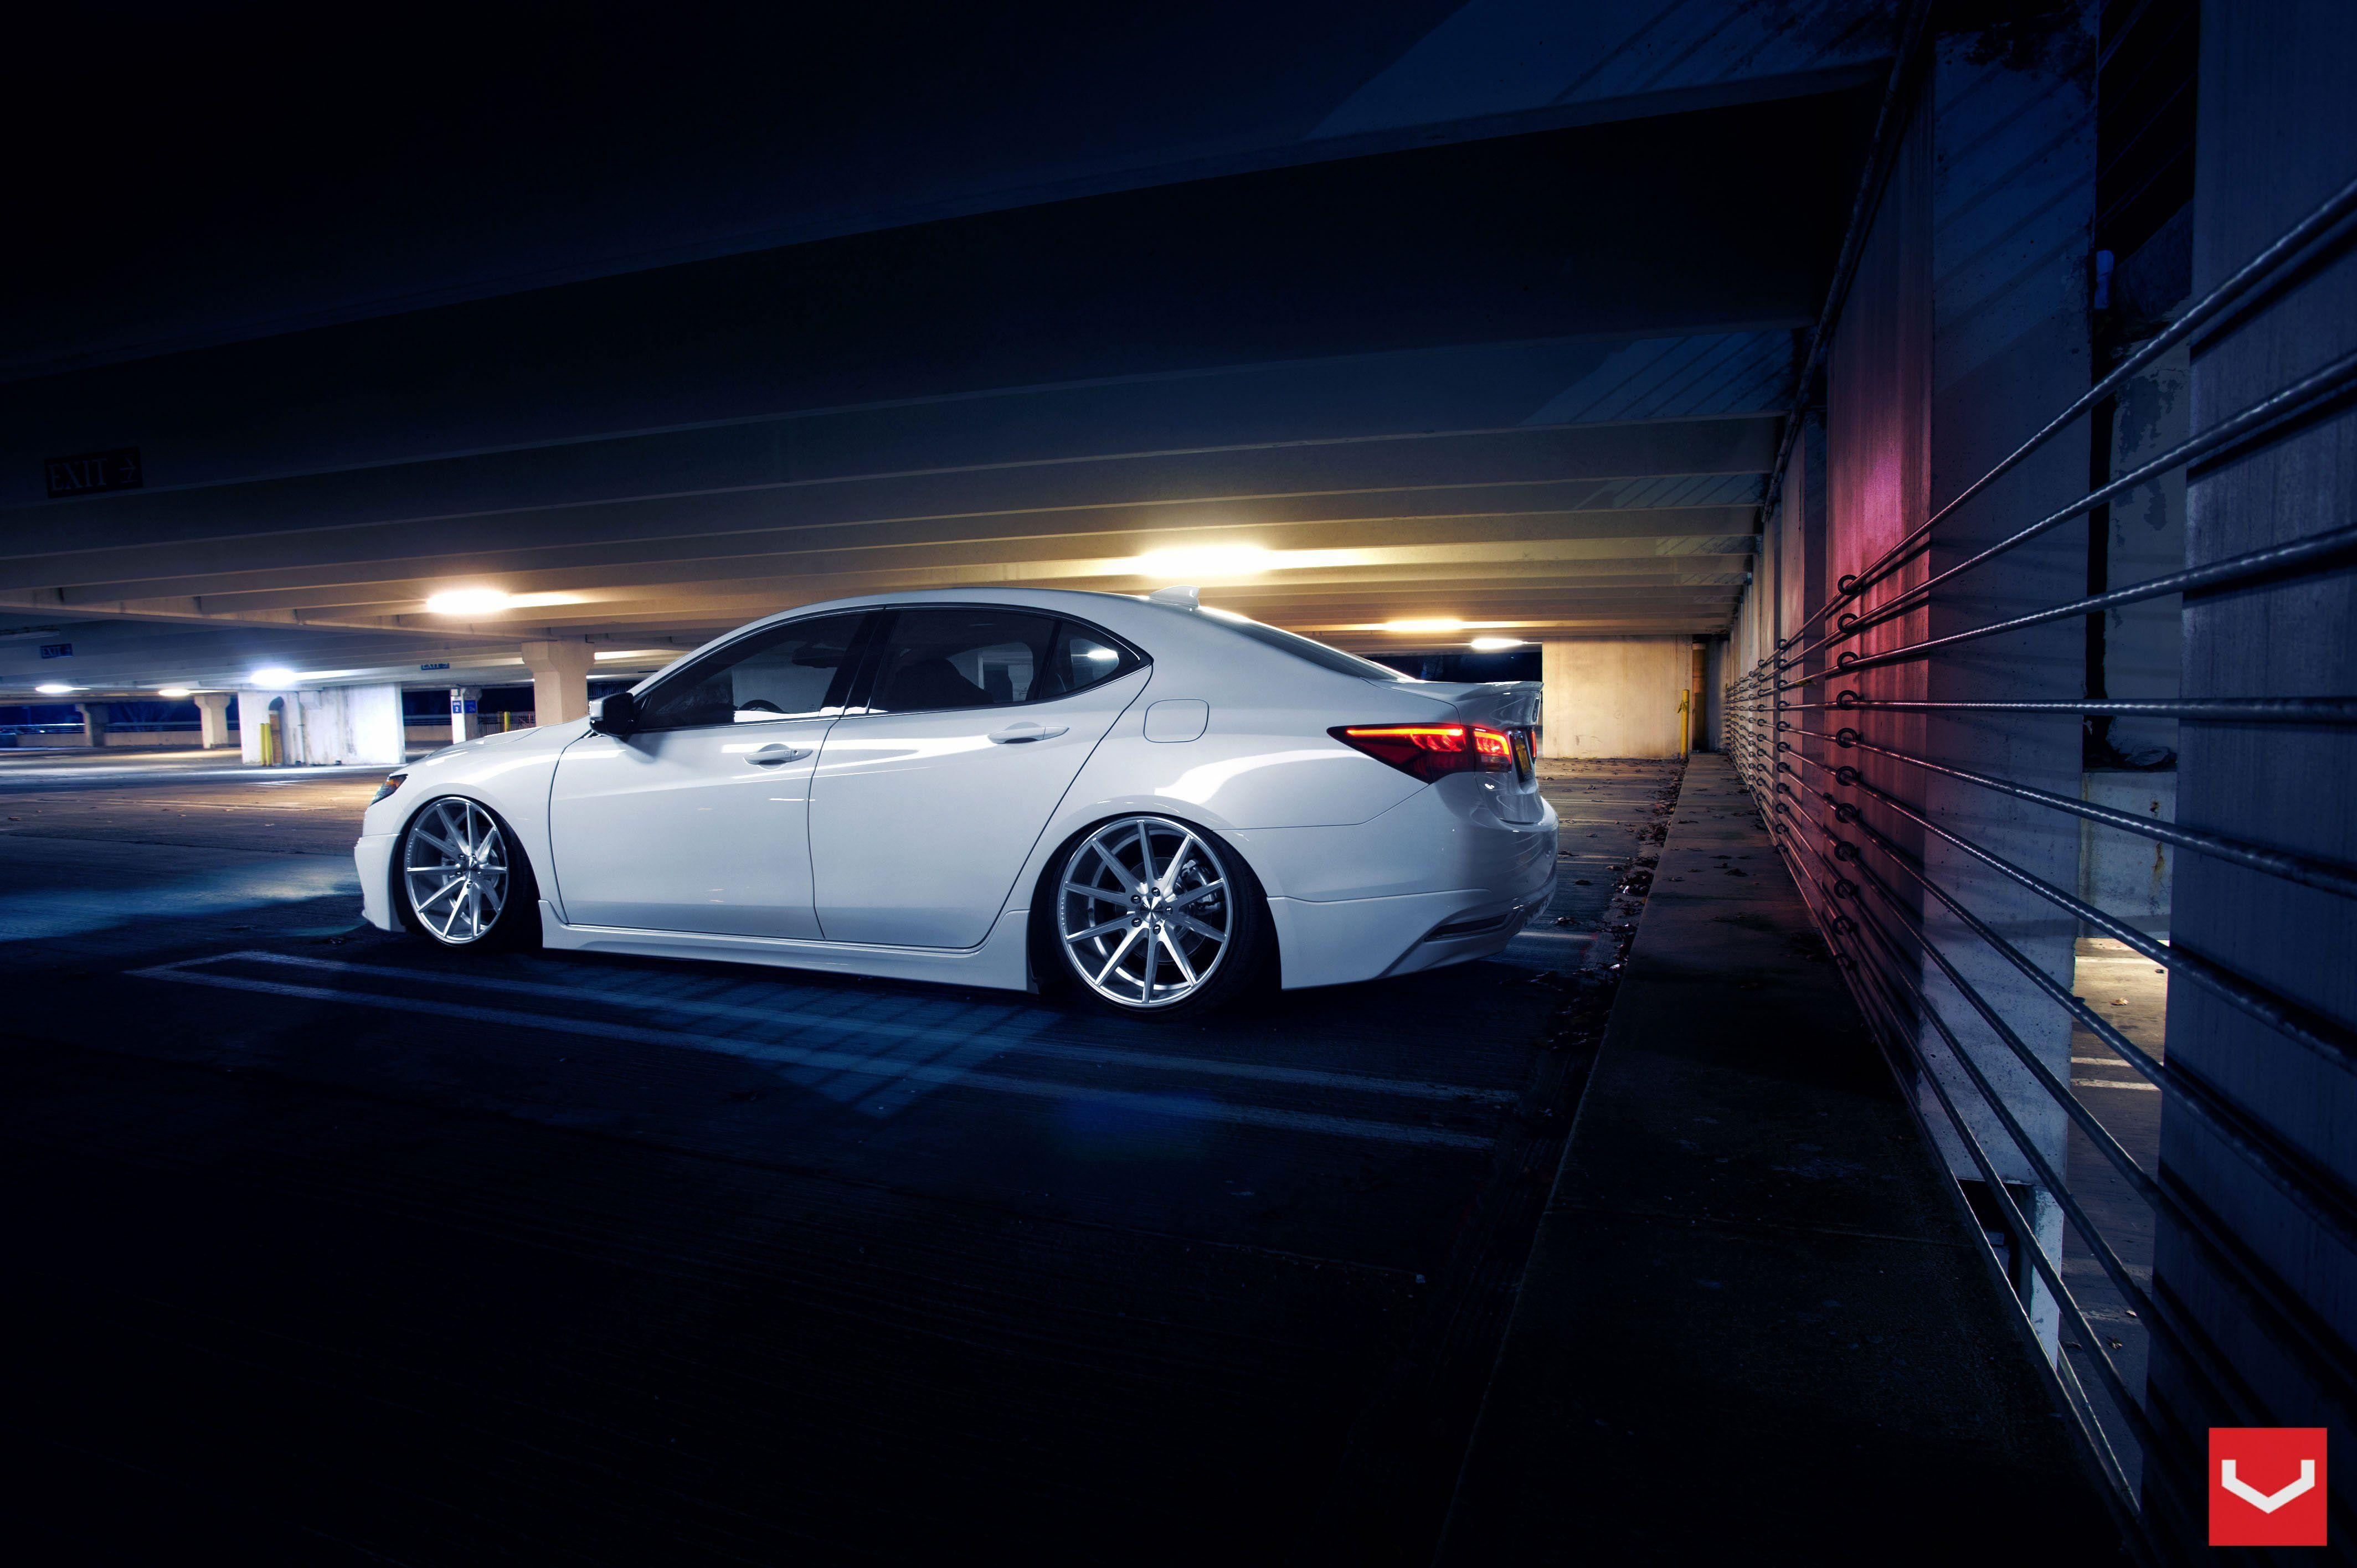 Acura TLX vossen wheels tuning cars wallpaper | 4256x2832 | 572382 ...